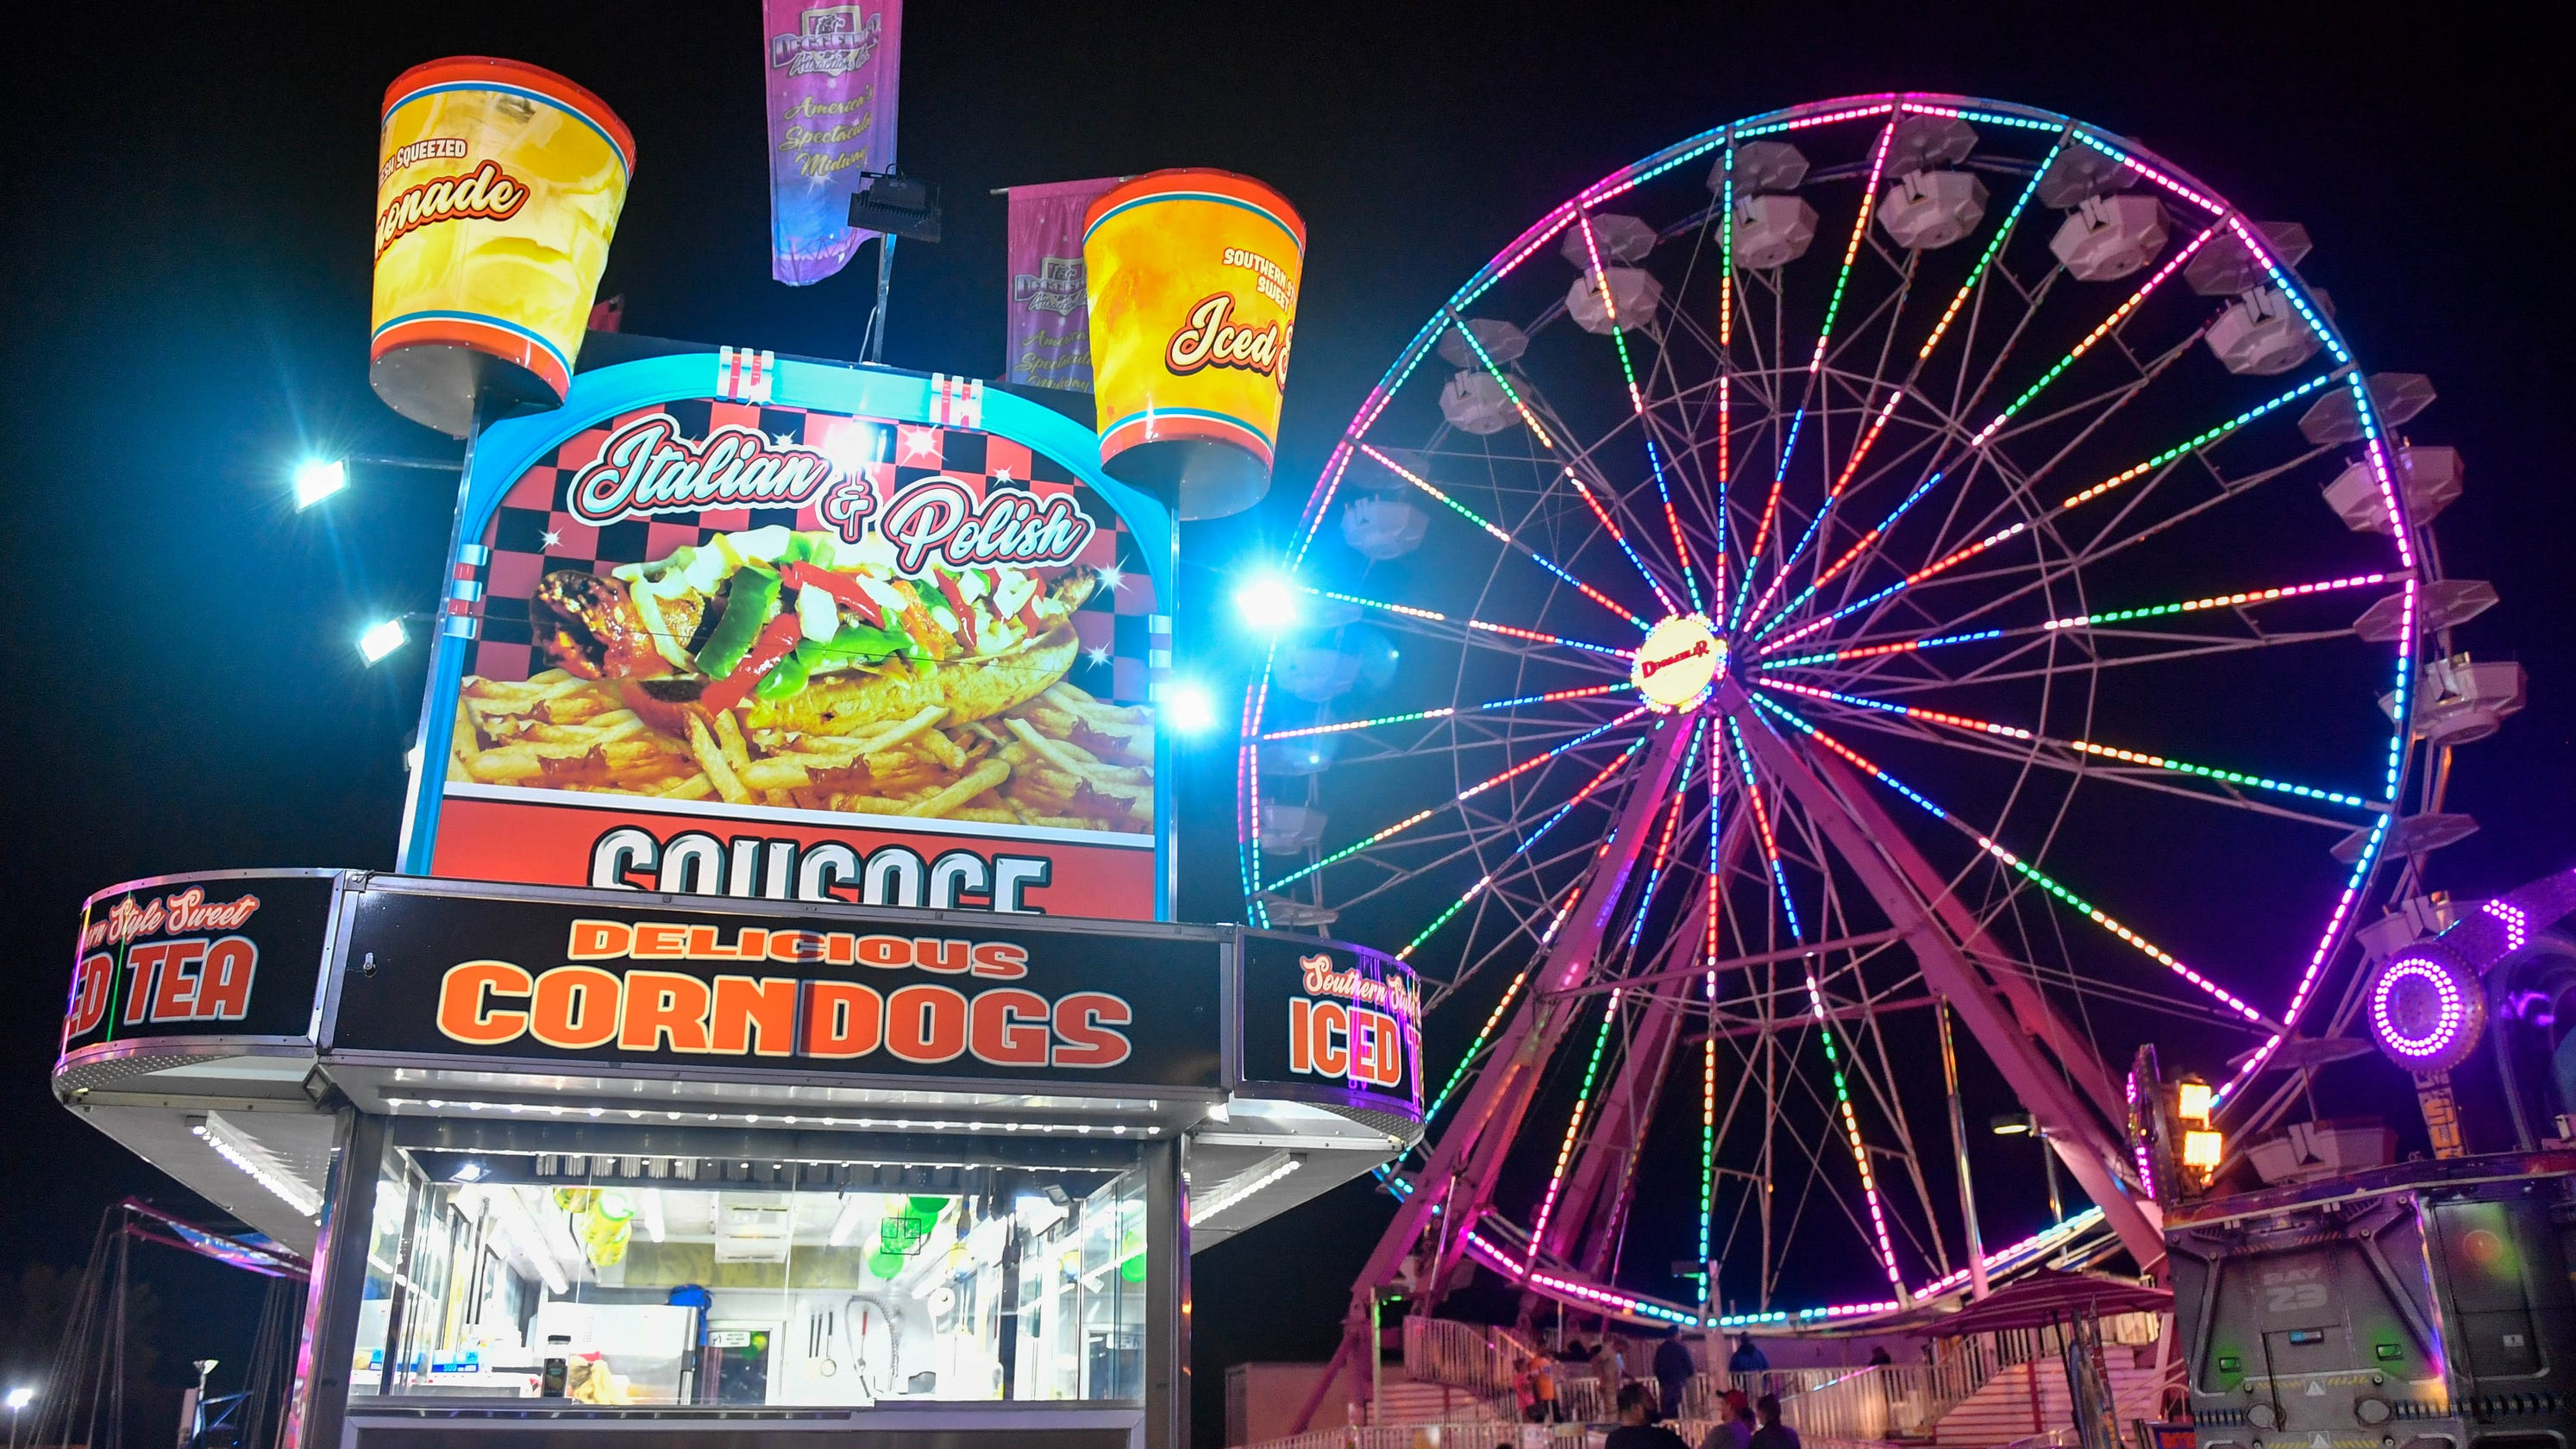 York Fair 2018: Admission, hours, prices, free shows and more